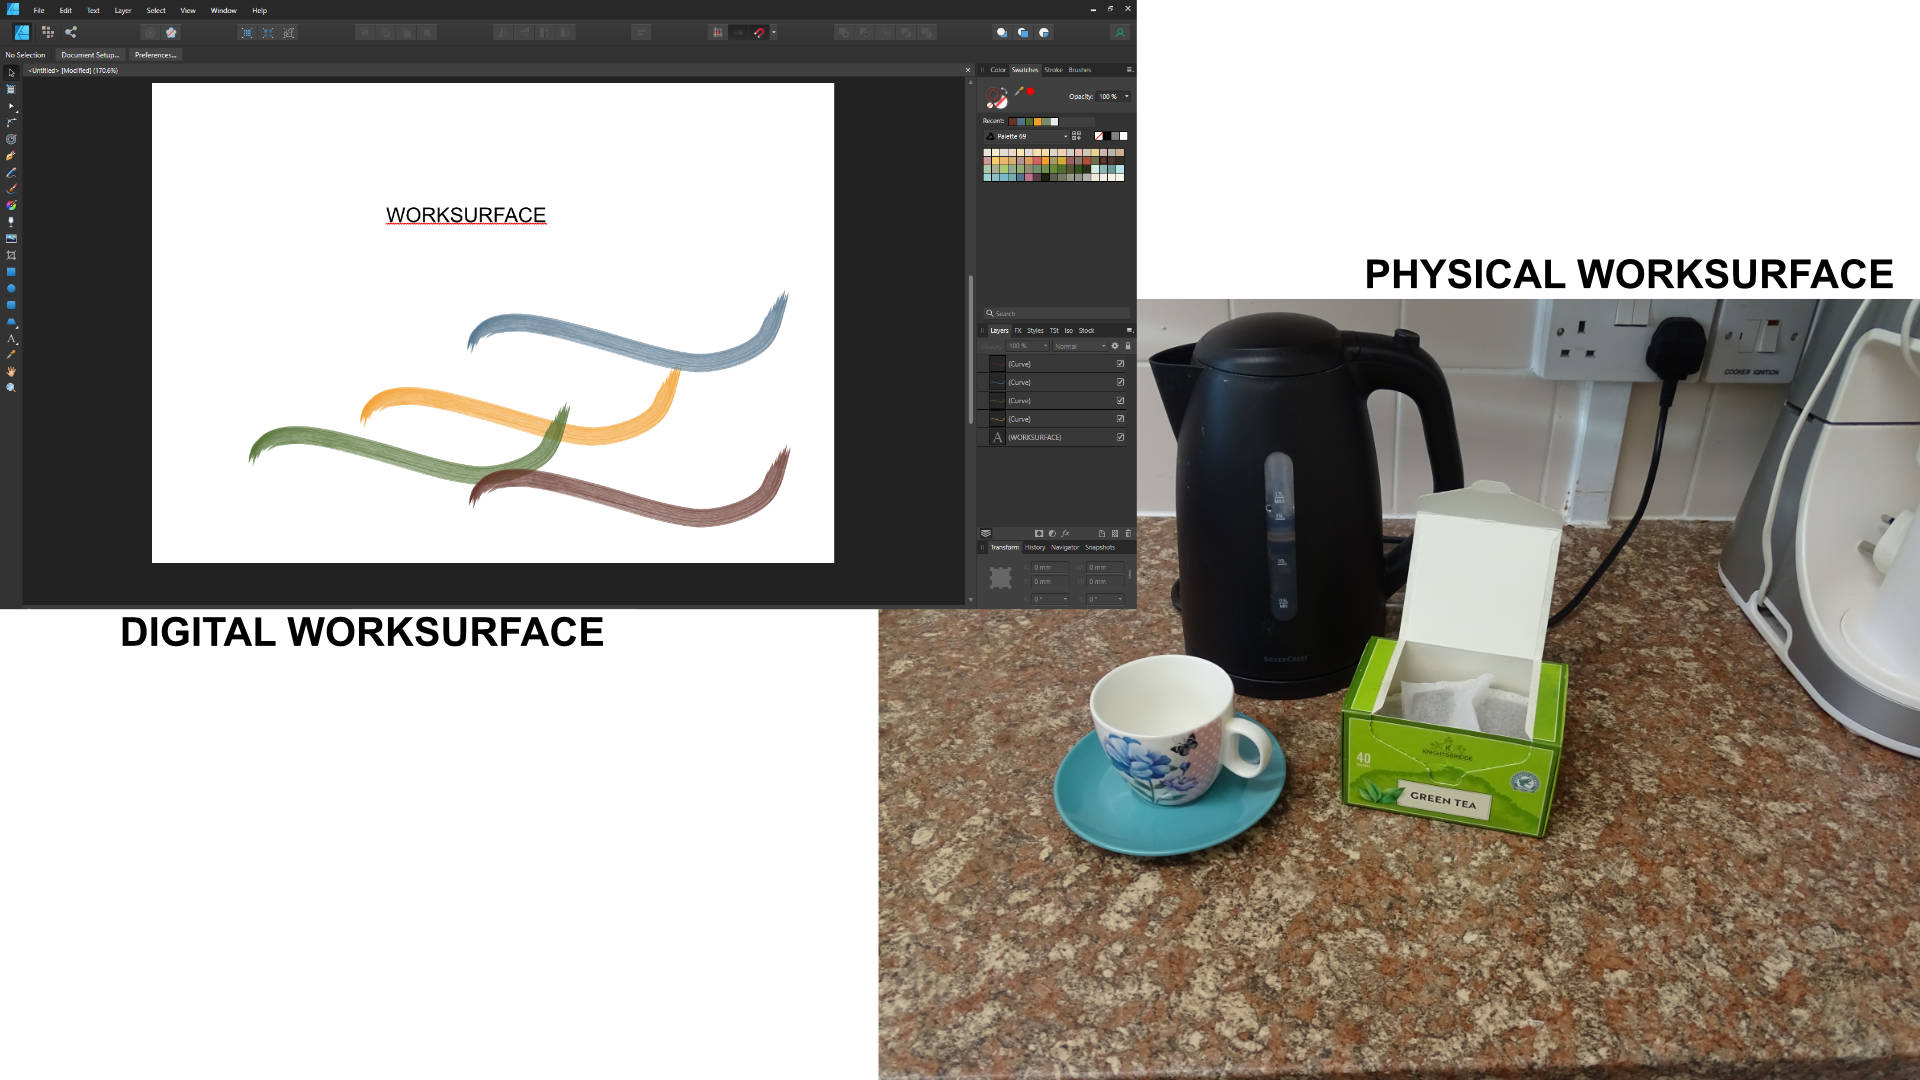 Worksurface-physical-and-digital-1